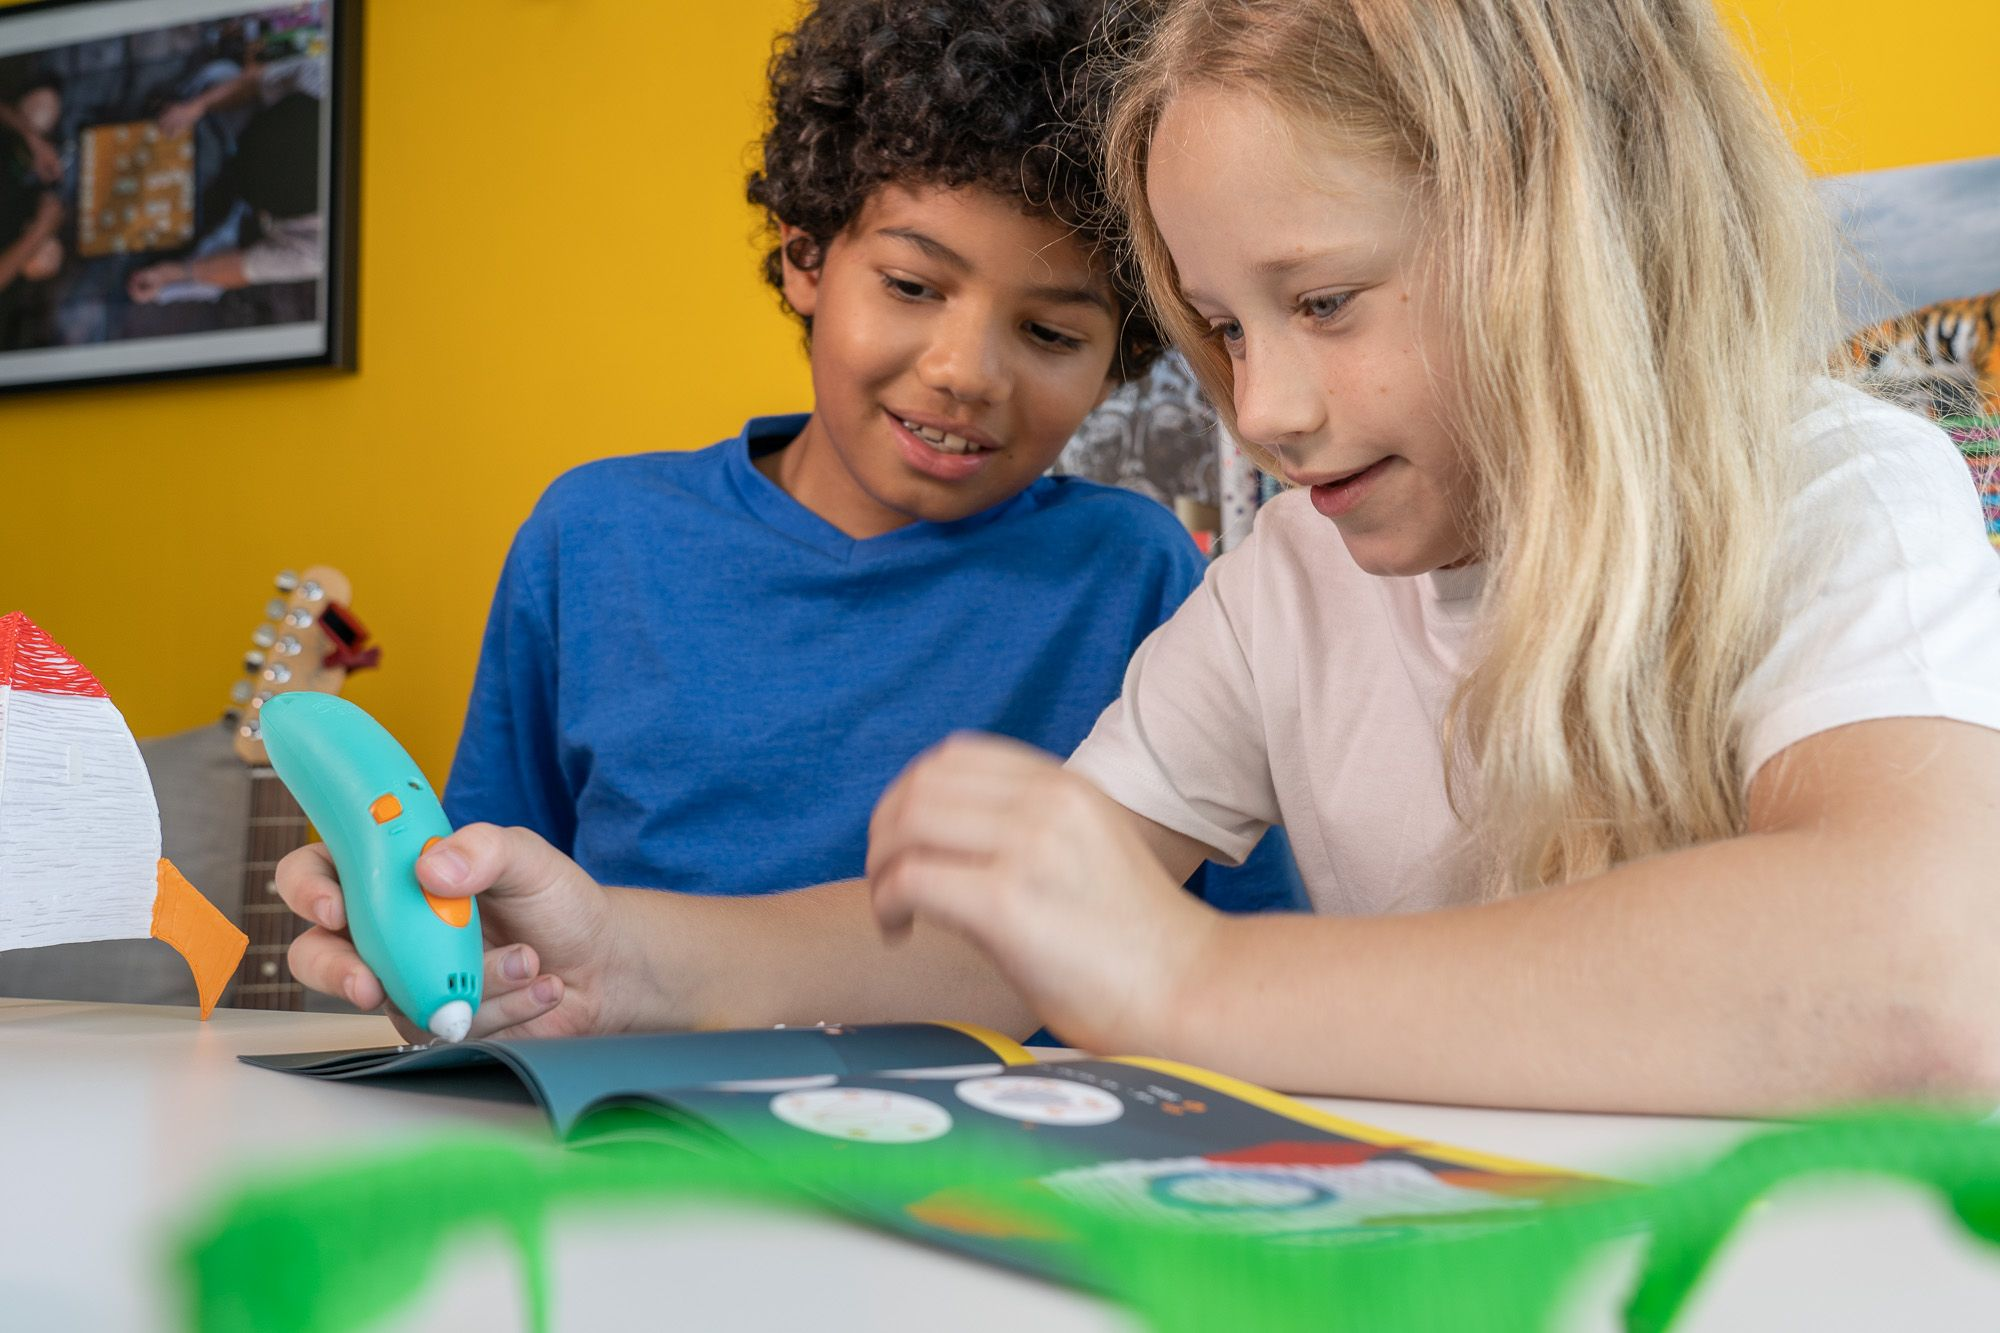 3Doodler Start+ puts kids' creativity in the driver's seat